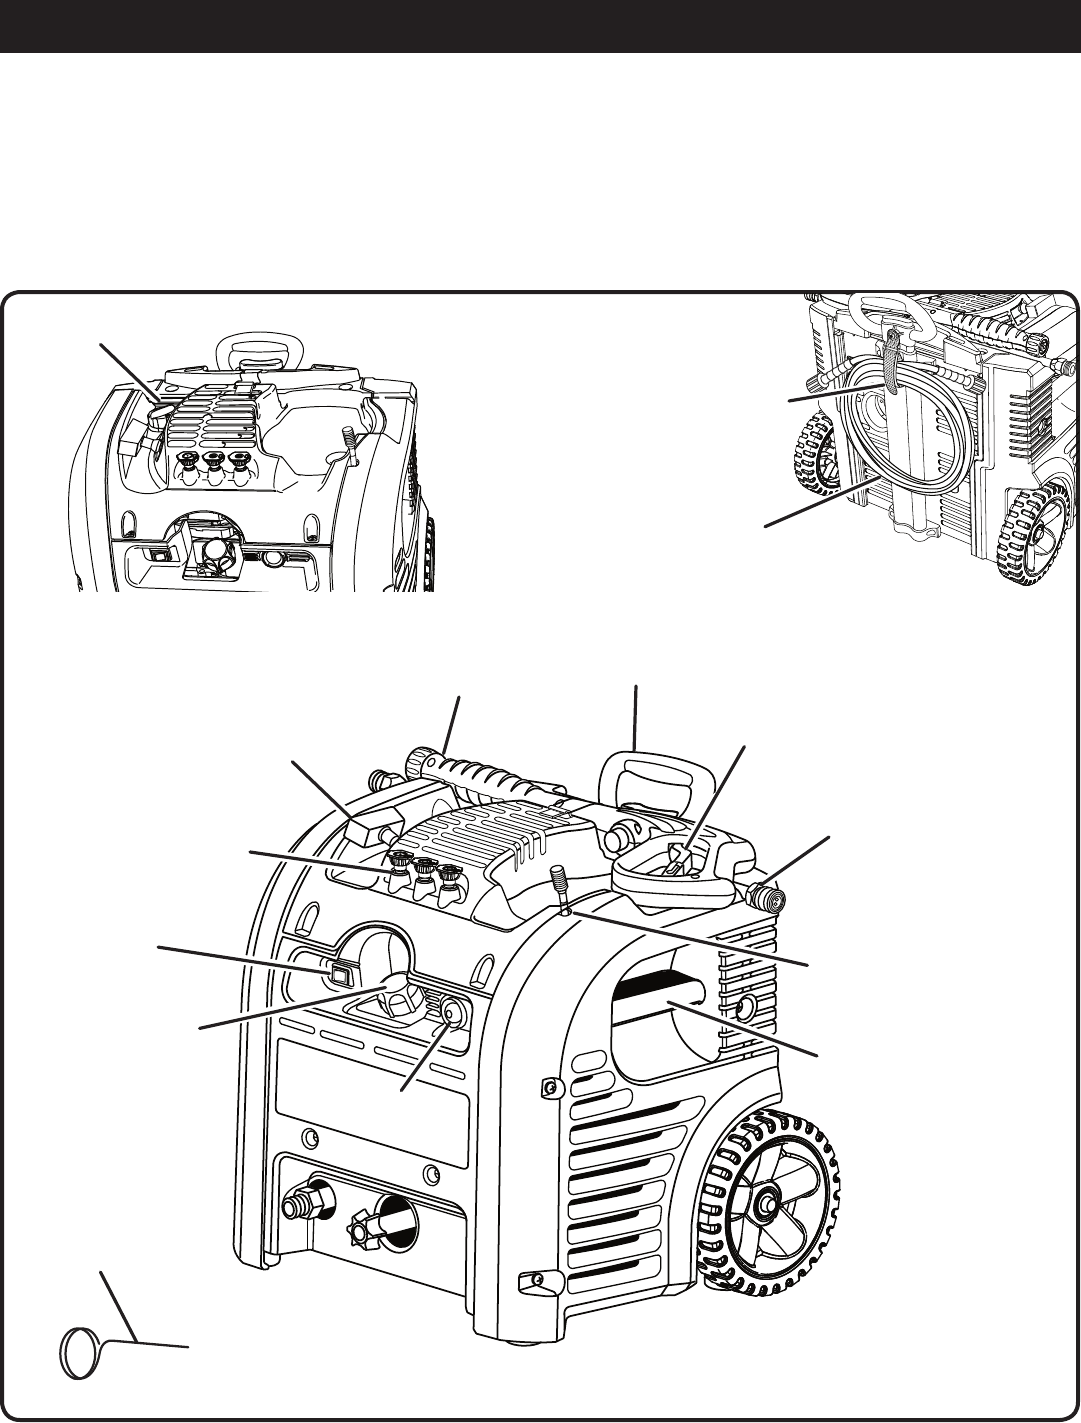 Page 7 of Husky Pressure Washer HU80522 User Guide